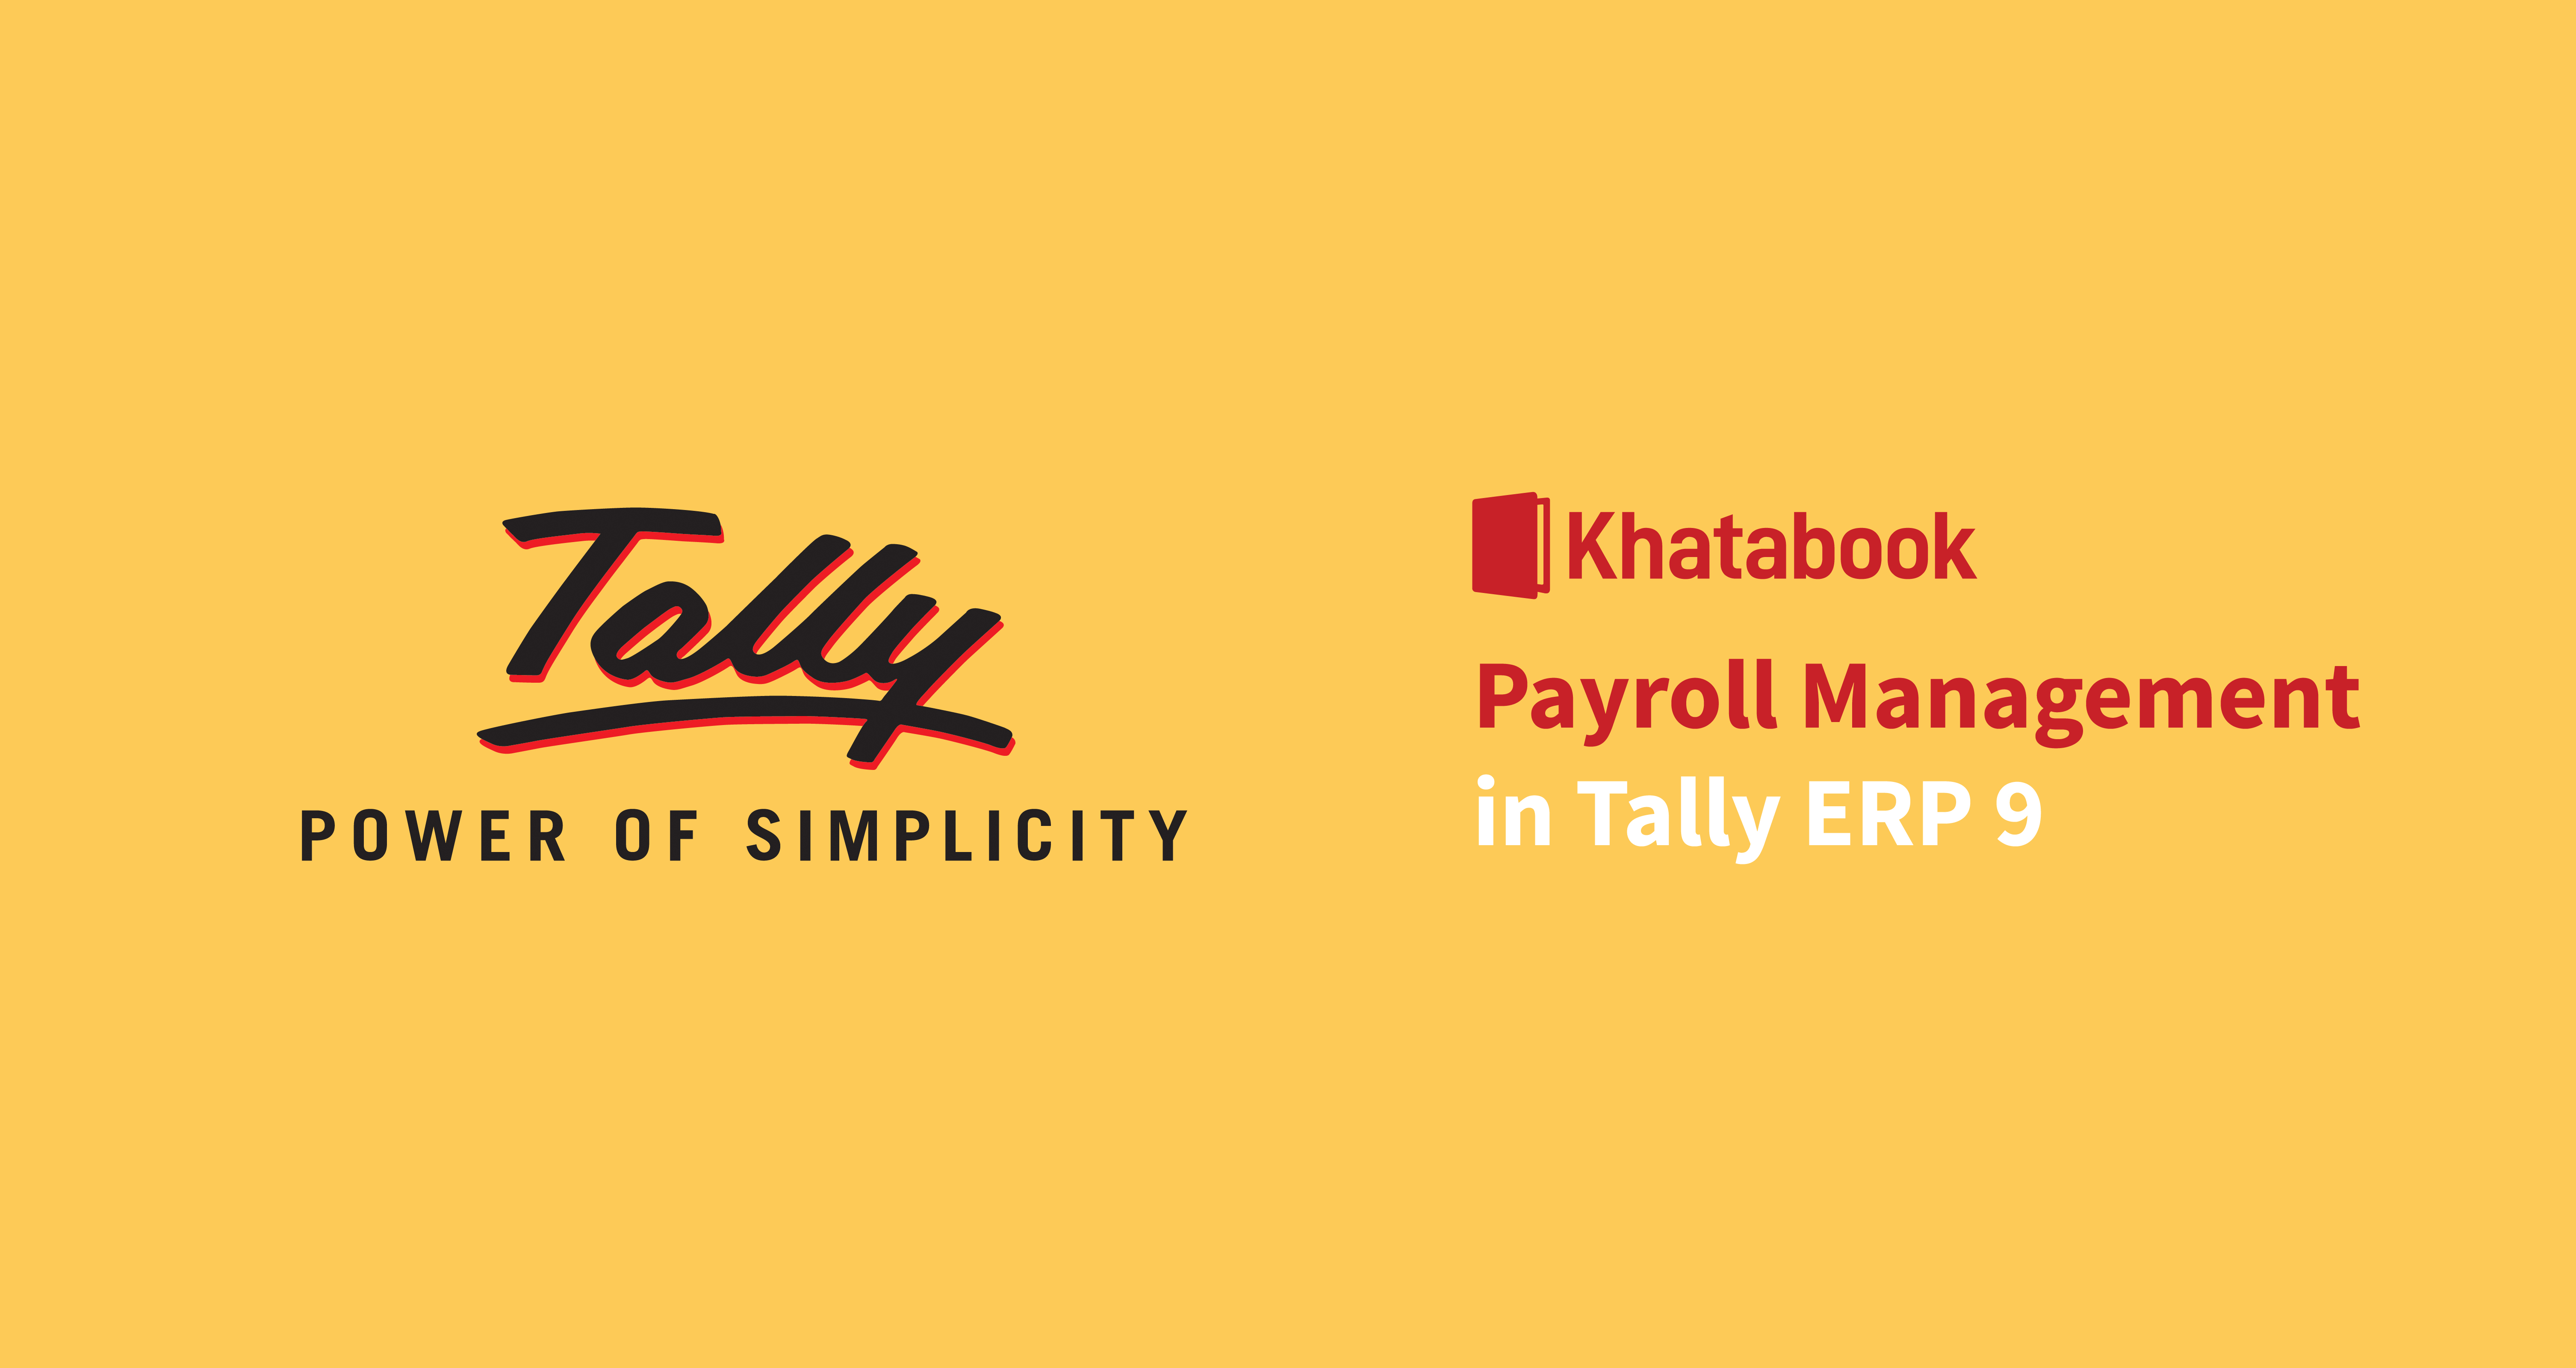 How to do Payroll Management in Tally ERP 9